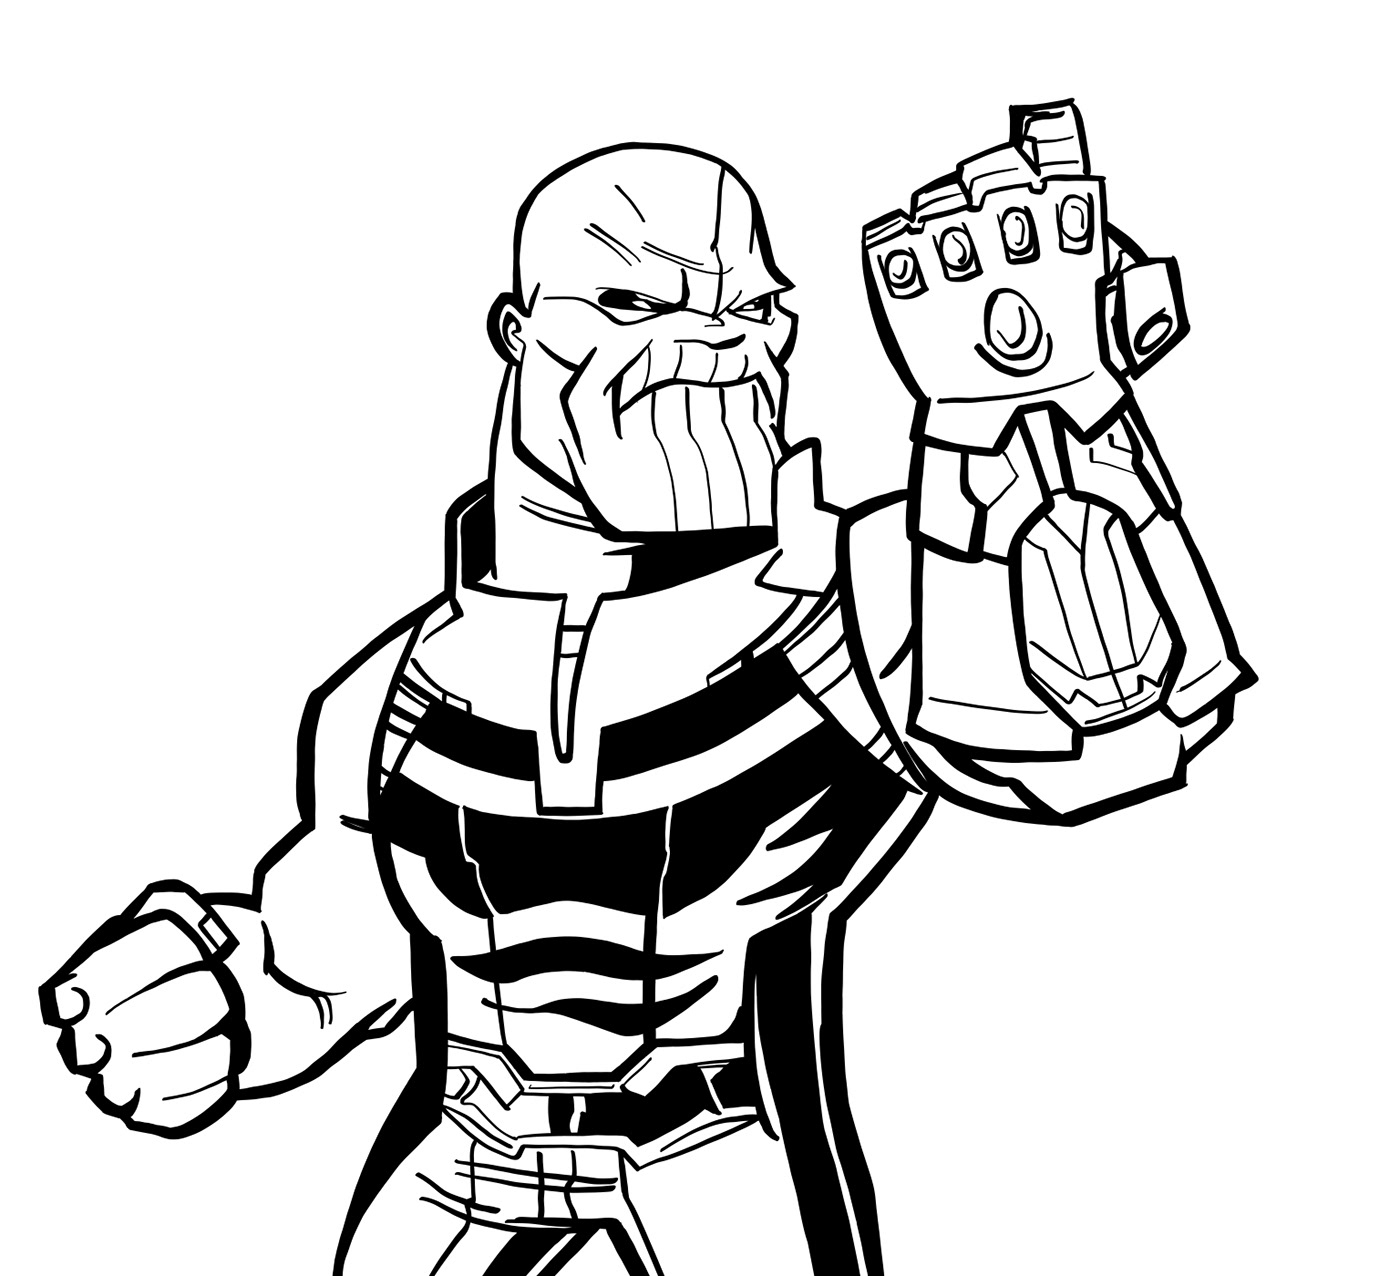 Thanos clipart black and white png black and white library Thanos Drawing | Free download best Thanos Drawing on ... png black and white library